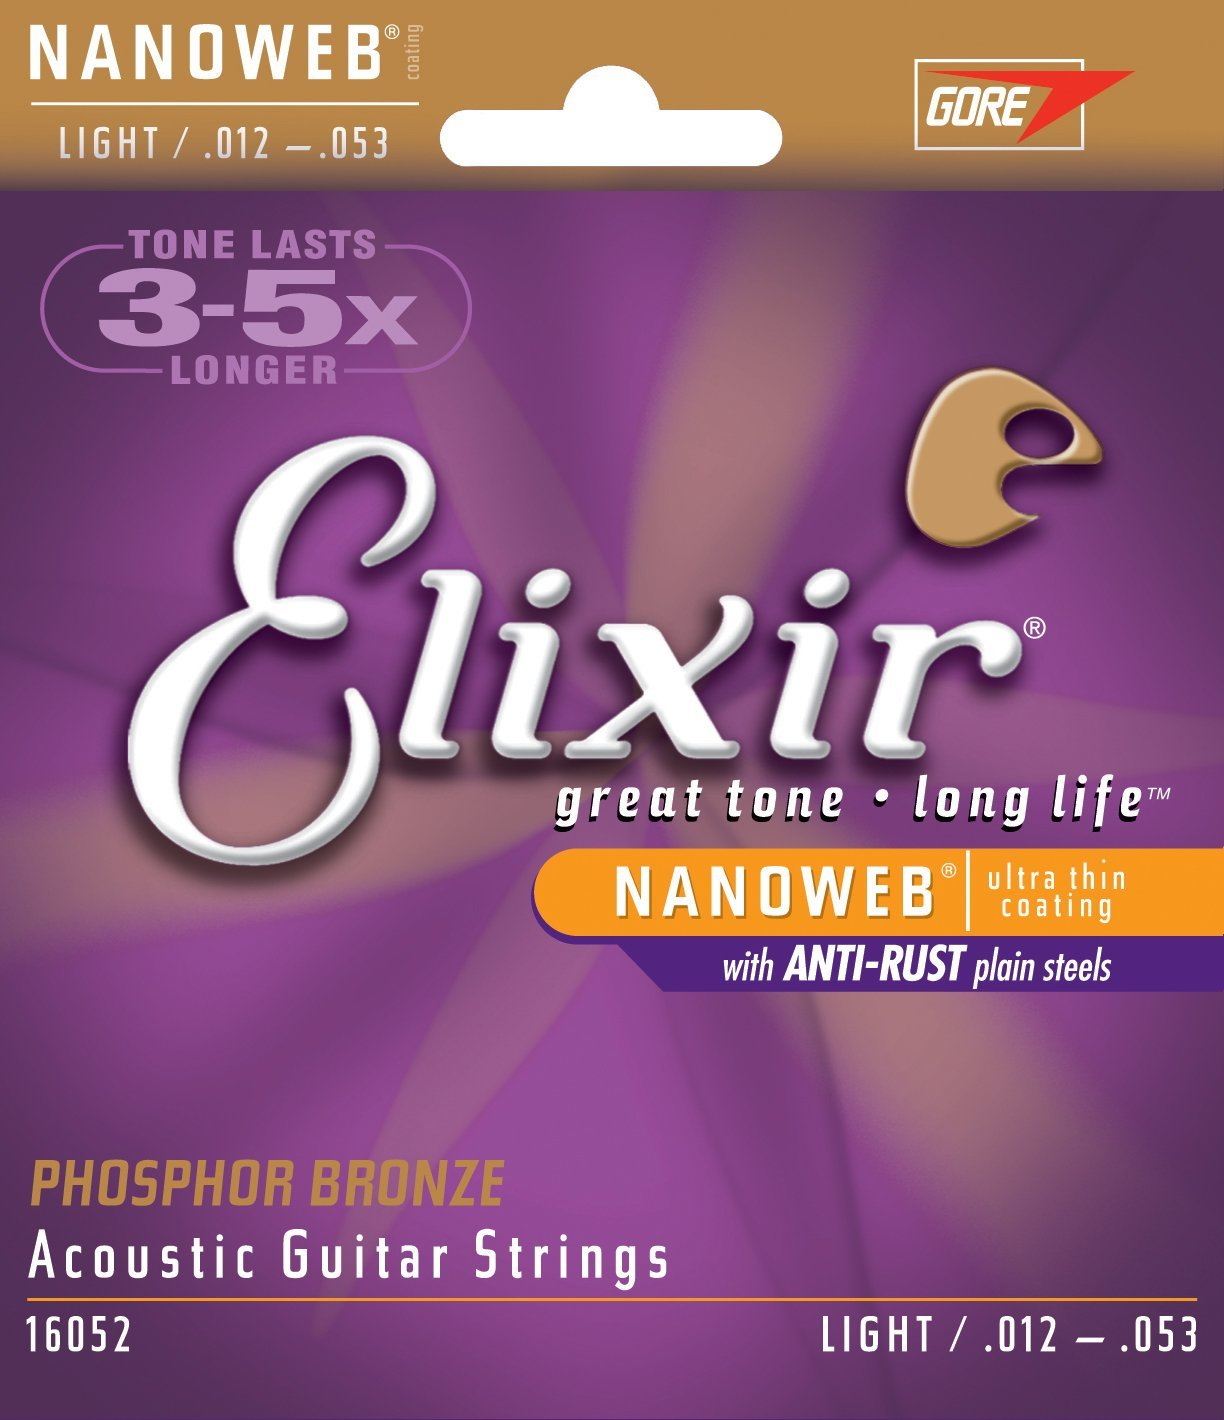 Elixir Strings Acoustic Phosphor Bronze Strings NANOWEB Coating